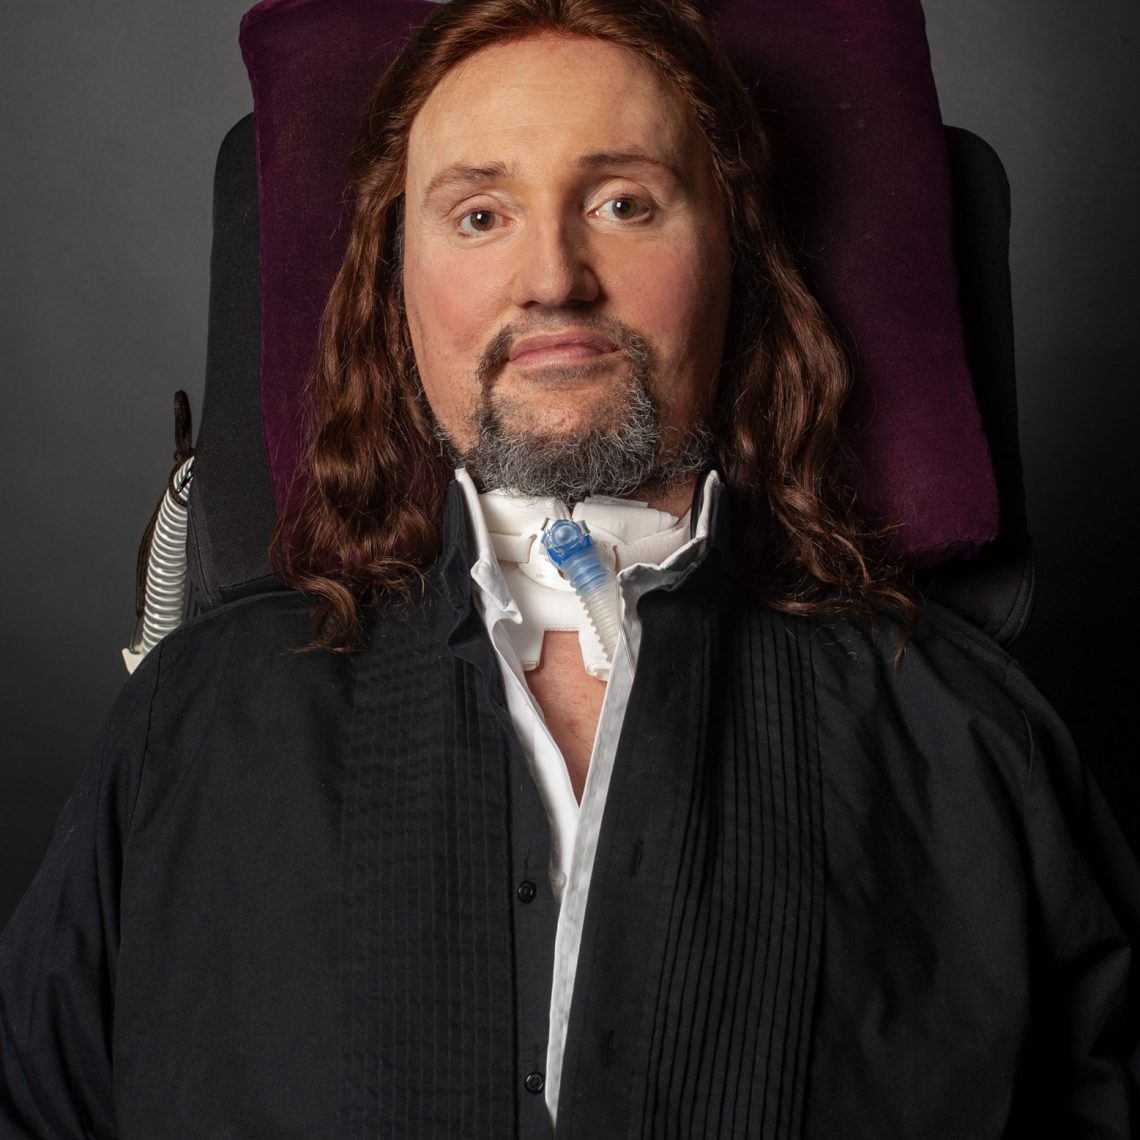 Jason Becker Reveals Video For New Song 'Hold On To Love' ft. Colany Holiday + Album Trailer For 'Triumphant Hearts'